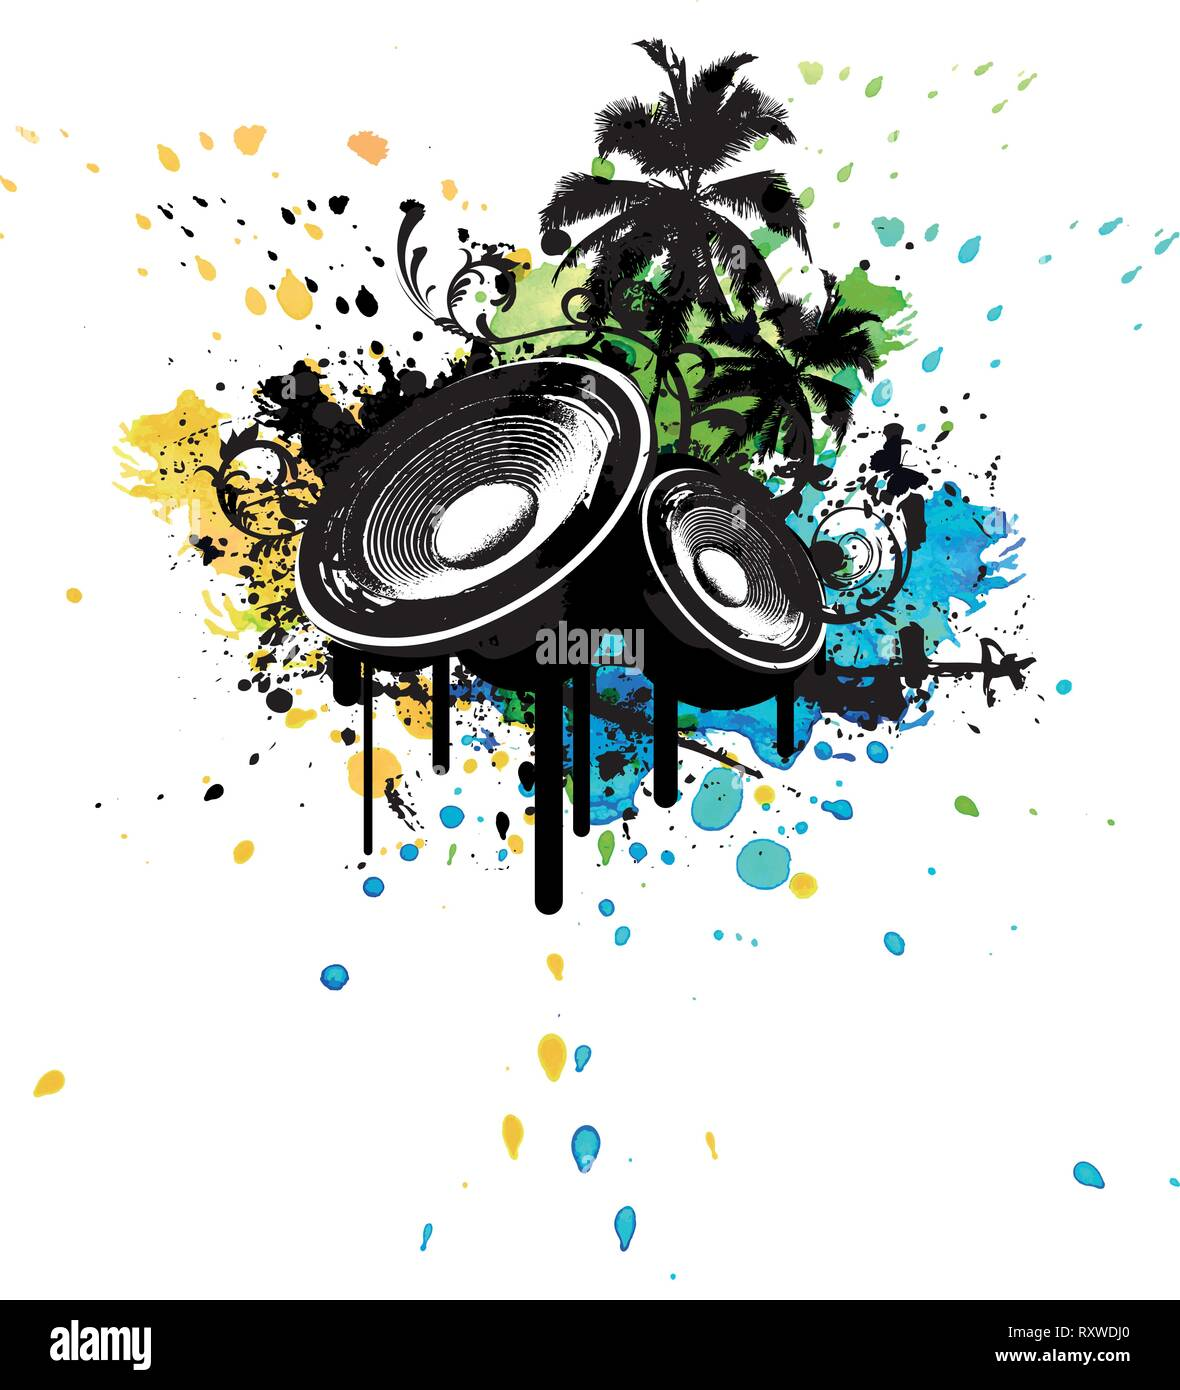 Grunge Party Box in Stereo poster with palms and watercolor splashing in the background Stock Vector